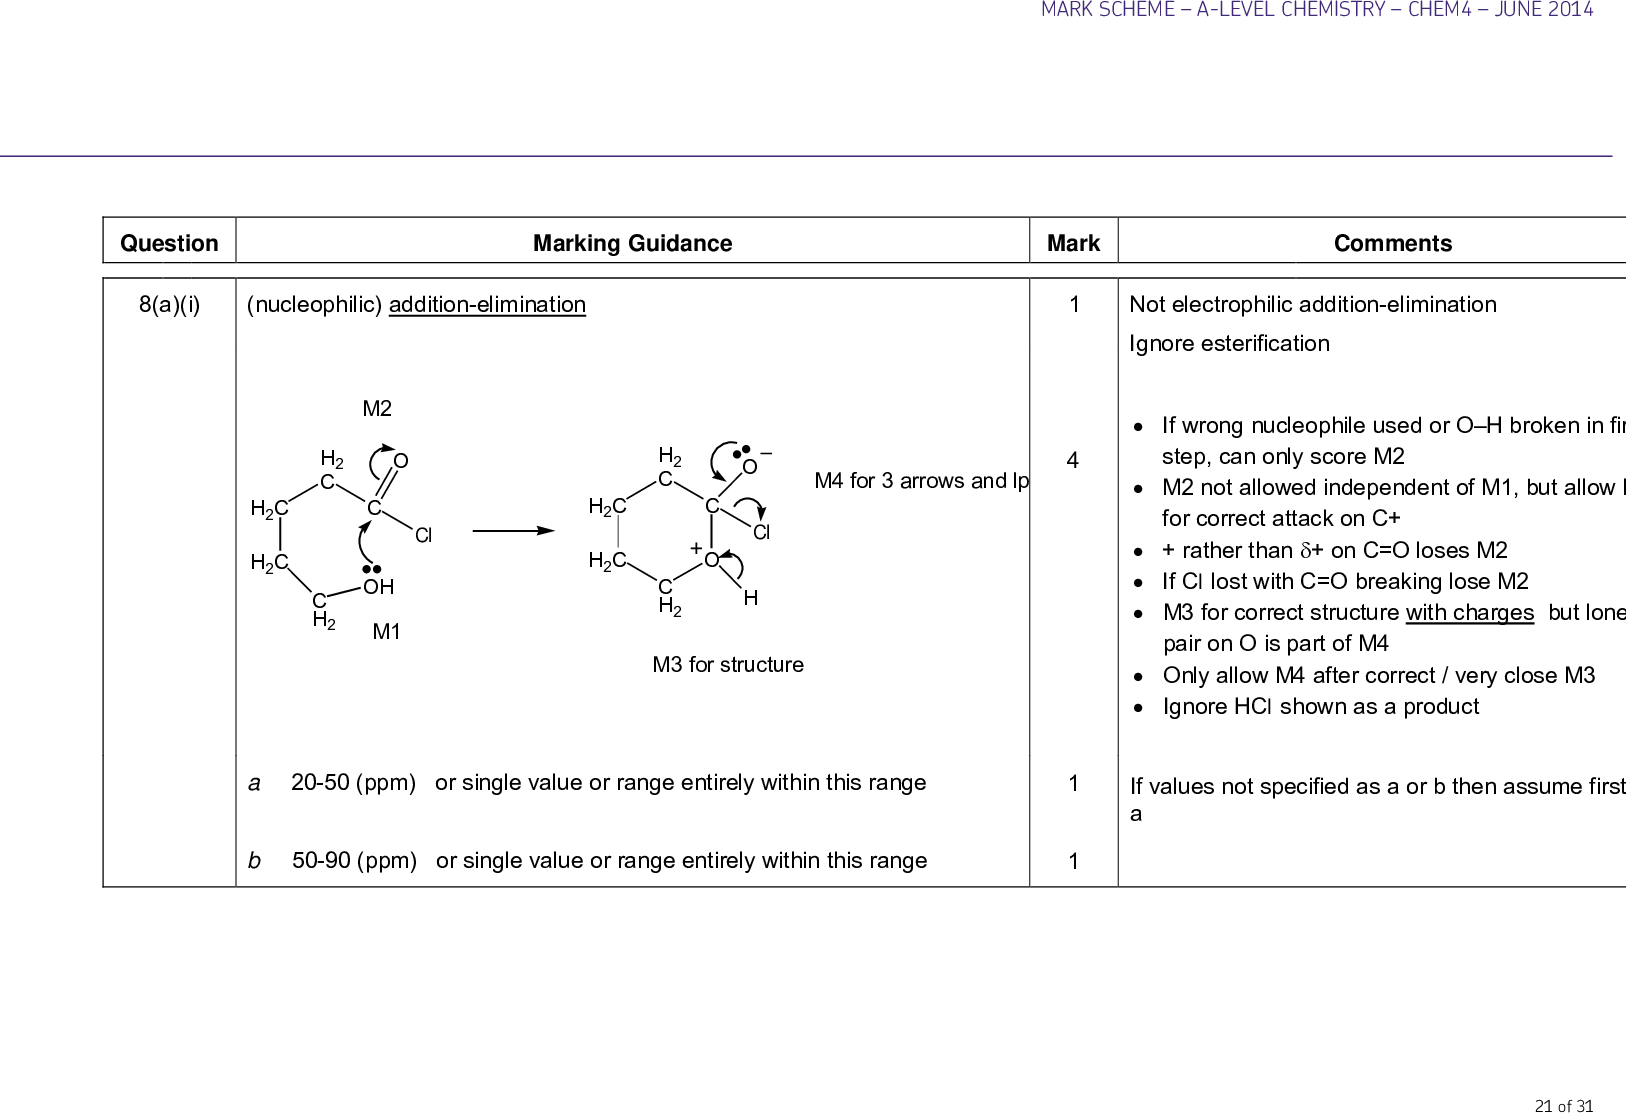 mark scheme a level chemistry chem june marking guidance mark comments nucleophilic addition elimination m h c cl c h oh m h c h c h c h c h c c h cl m for structure m for arrows and lp a ppm or single value or range entirely within this range b ppm or single value or range entirely within this range not electrophilic addition elimination ignore esterification if wrong nucleophile used or o h broken in first step can only score m m not allowed independent of m but allow m for correct attack on c rather than on c o loses m if cl lost with c o breaking lose m m for correct structure with charges but lone pair on o is part of m only allow m after correct very close m ignore hcl shown as a product if values not specified as a or b then assume first is a of question a i mark scheme a level chemistry chem june ch ch ch ch c o or ch ch ch ch c o or och ch ch ch co or ch ch ch ch coo one unit only condensation tollens fehling s benedicts acidified potassium dichromate no reaction no visible change no silver mirror no reaction no visible change stays blue no red ppt no reaction no visible change stays orange does not turn green silver mirror grey ppt red ppt allow brick red or red orange orange turns green two peaks four peaks a ii b must have trailing bonds but ignore n allow o ch c o but not c h penalise wrong formula for tollens or missing acid with potassium dichromate but mark on ignore clear nothing penalise wrong starting colour for dichromate allow trough peak spike ignore details of splitting if values not specified as j or k then assume first is j of mark scheme a level chemistry chem june c if all the structures are unlabelled assume that the first drawn ester is l the second ester is m the first drawn acid is n the second p the cyclic compound should be obvious h c c ch c o ch l ester or h c c ch cooch ester h c c c cooch h c or c c oocch h c or c c ooch ch ch ch chcooch ch ch choocch ch ch c ch ooch h c or c c ch ooch ch ch or c c ooch ch ch chch ooch ch ch ch c